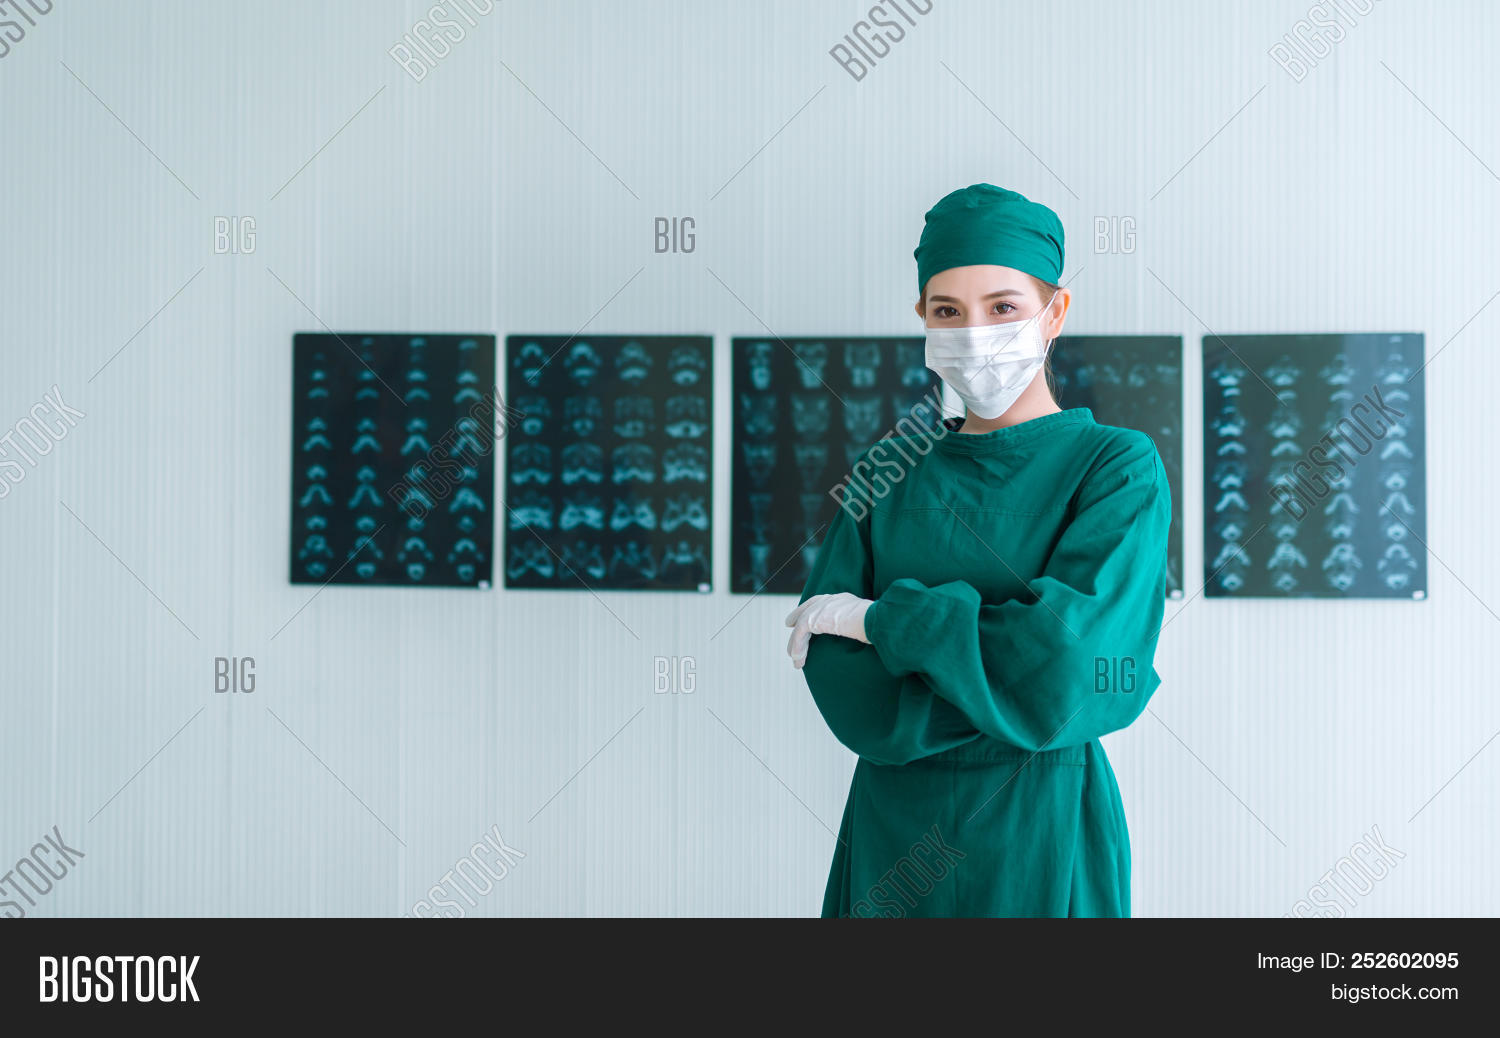 67ff0e81a1f Portrait of Female doctor Surgeon in green scrubs putting on surgical  gloves and looking at Camera . Young asian doctor woman with x-ray image  background in ...